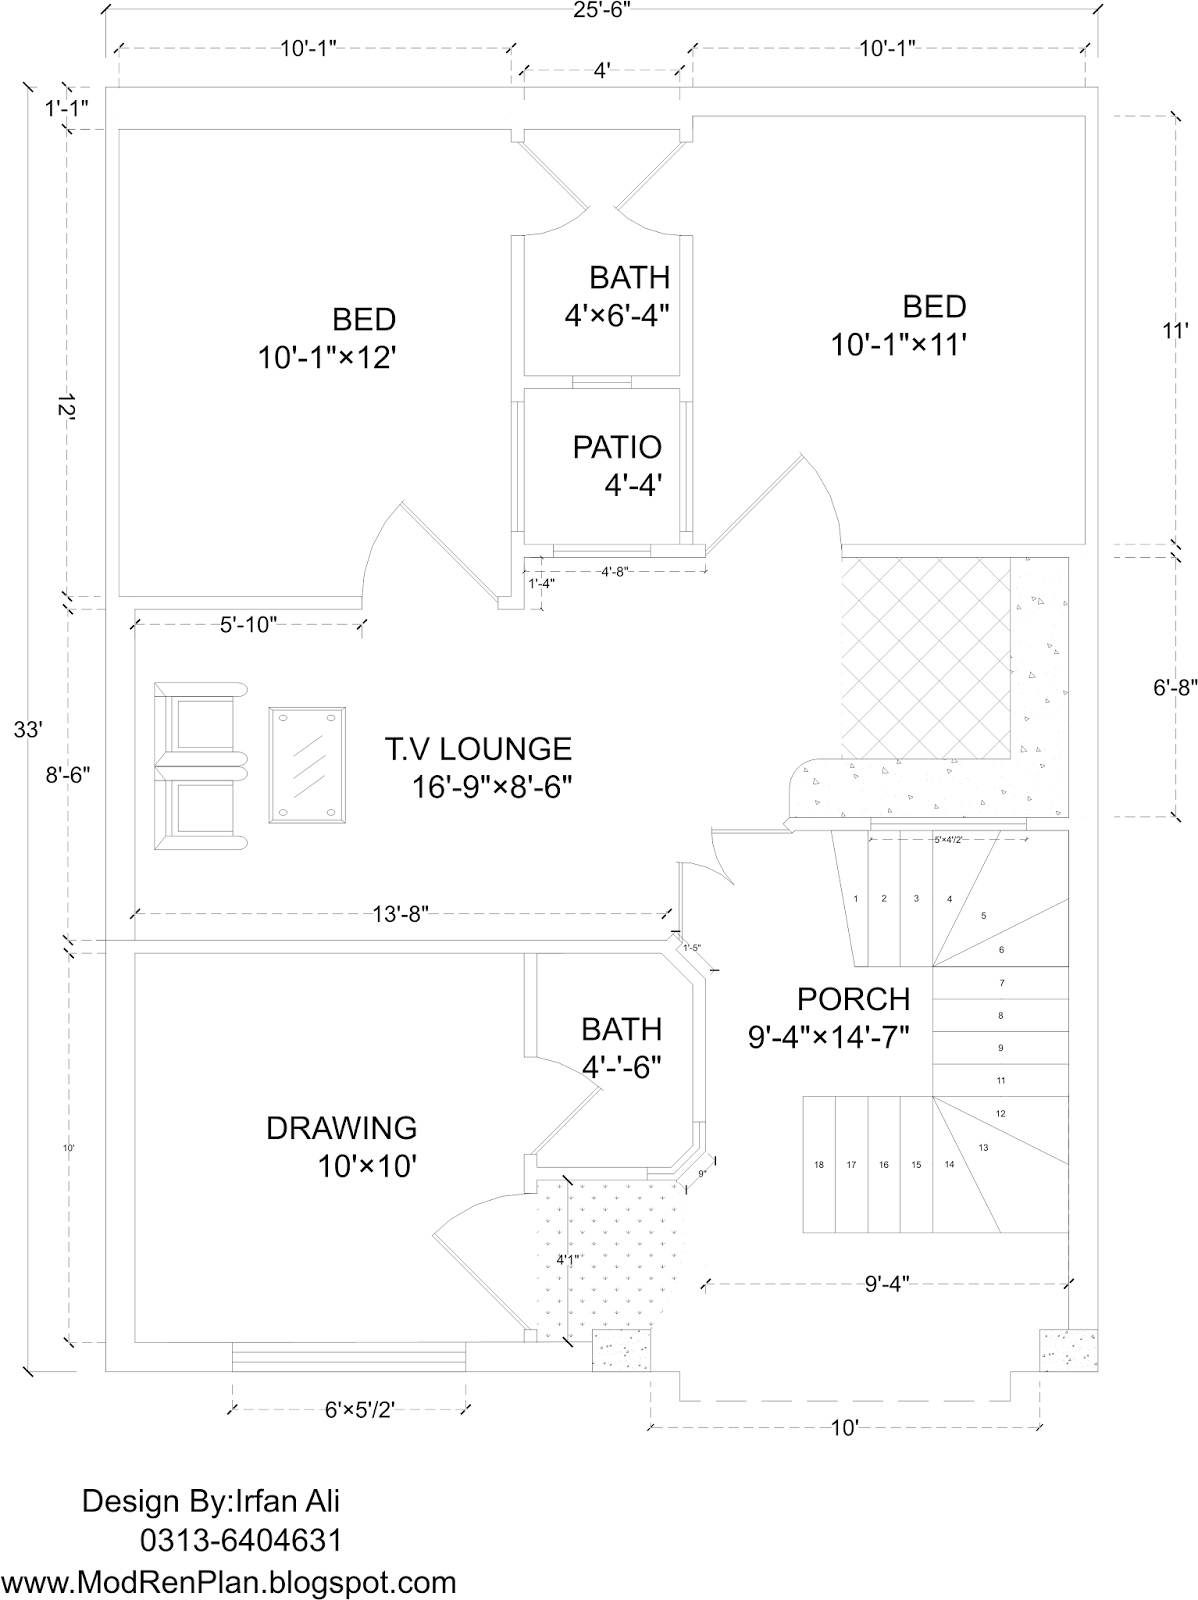 5 marla house plan and map with detail 25x33 house plan House map online free